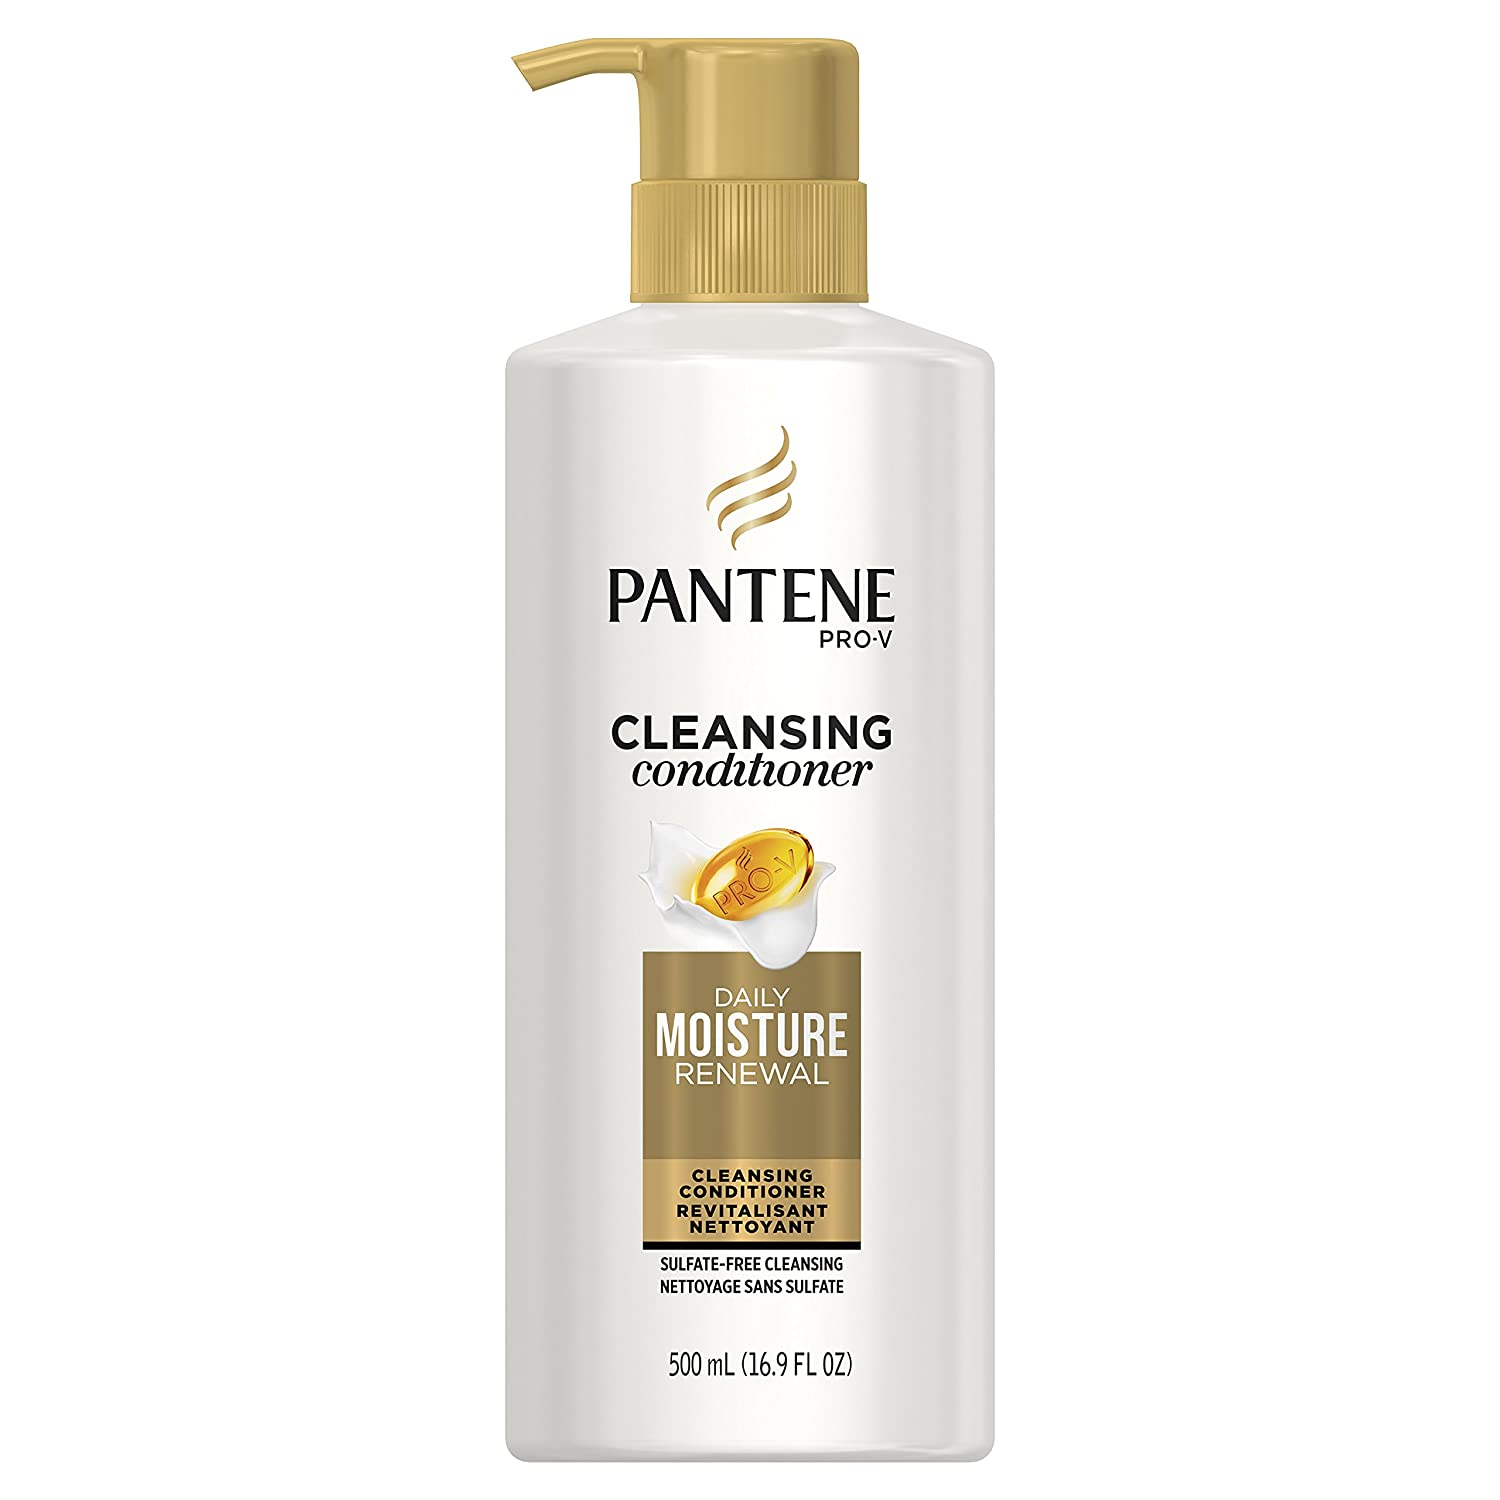 Pantene Pro-V Daily Moisture Renewal Cleansing Conditioner, 16.9 fl oz (Packaging May Vary)